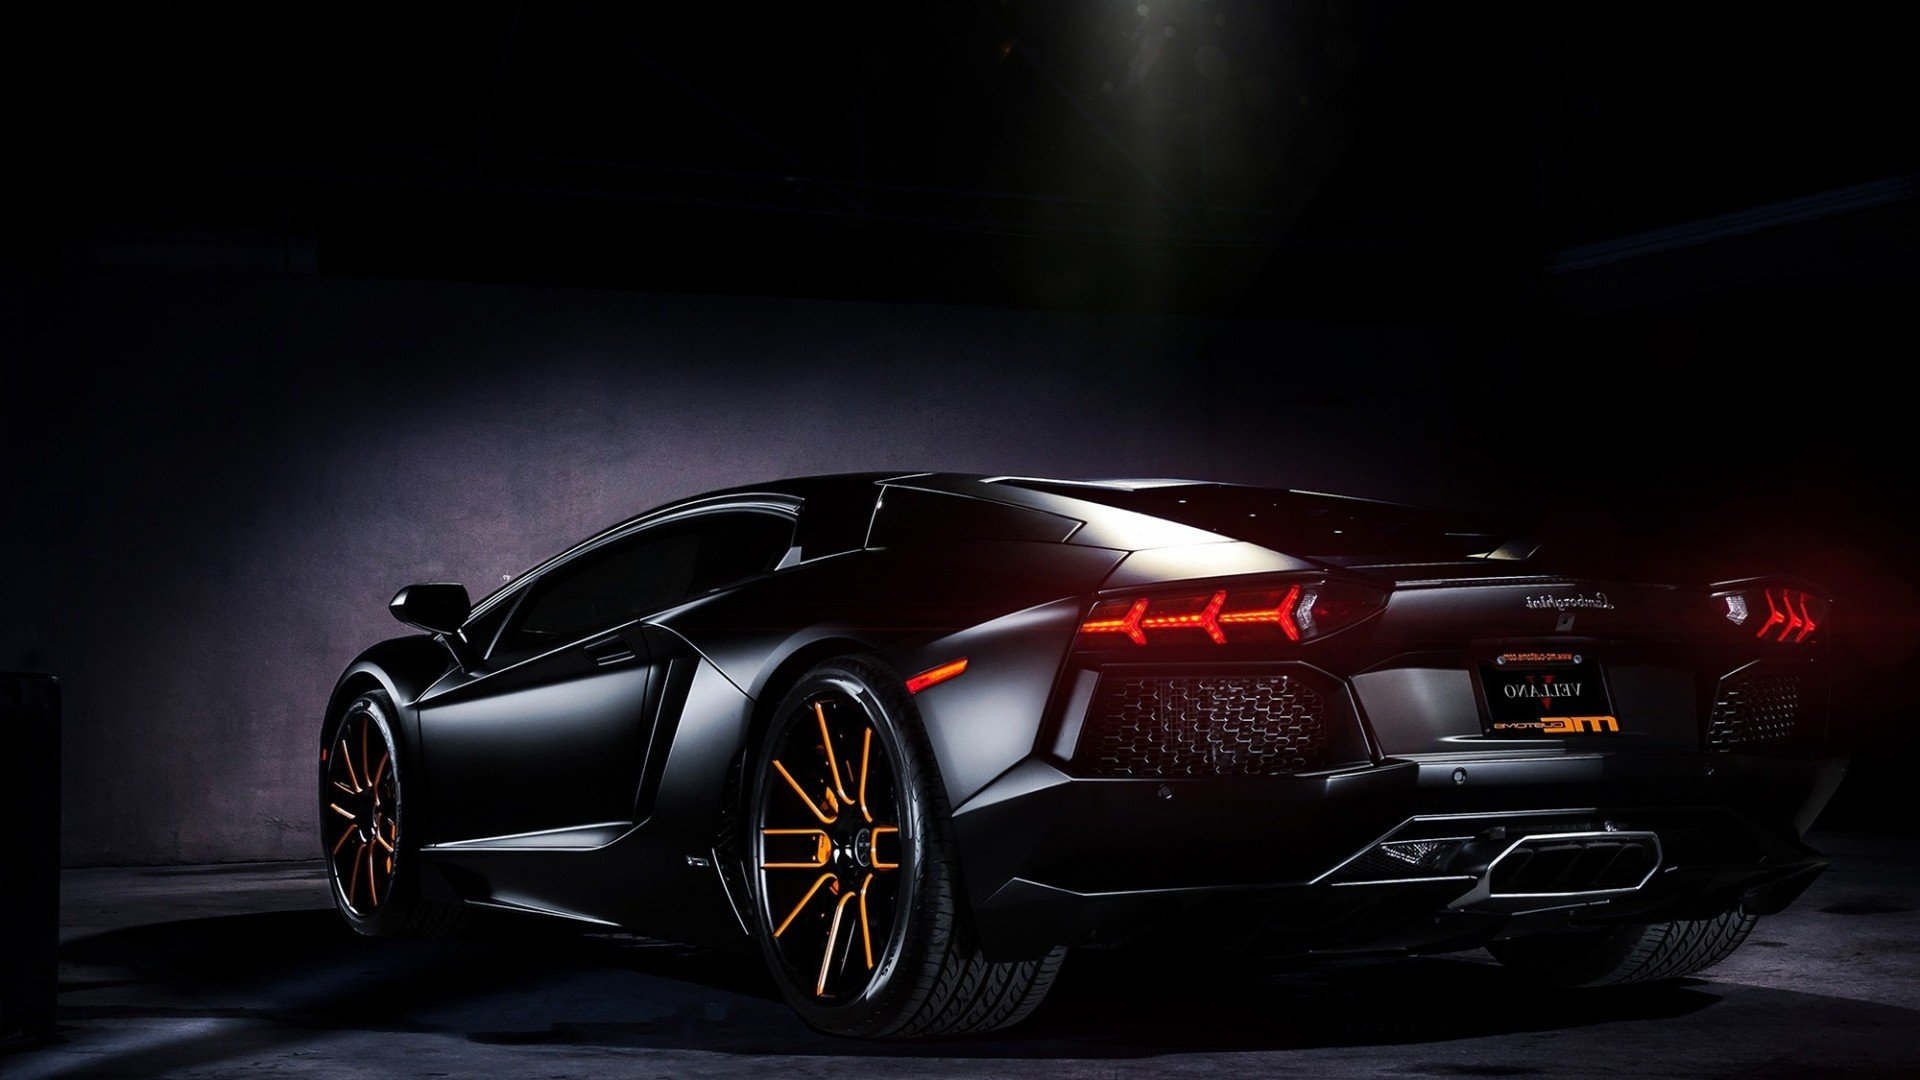 1920x1080 Lamborghini Black Laptop Full Hd 1080p Hd 4k Wallpapers Images Backgrounds Photos And Pictures